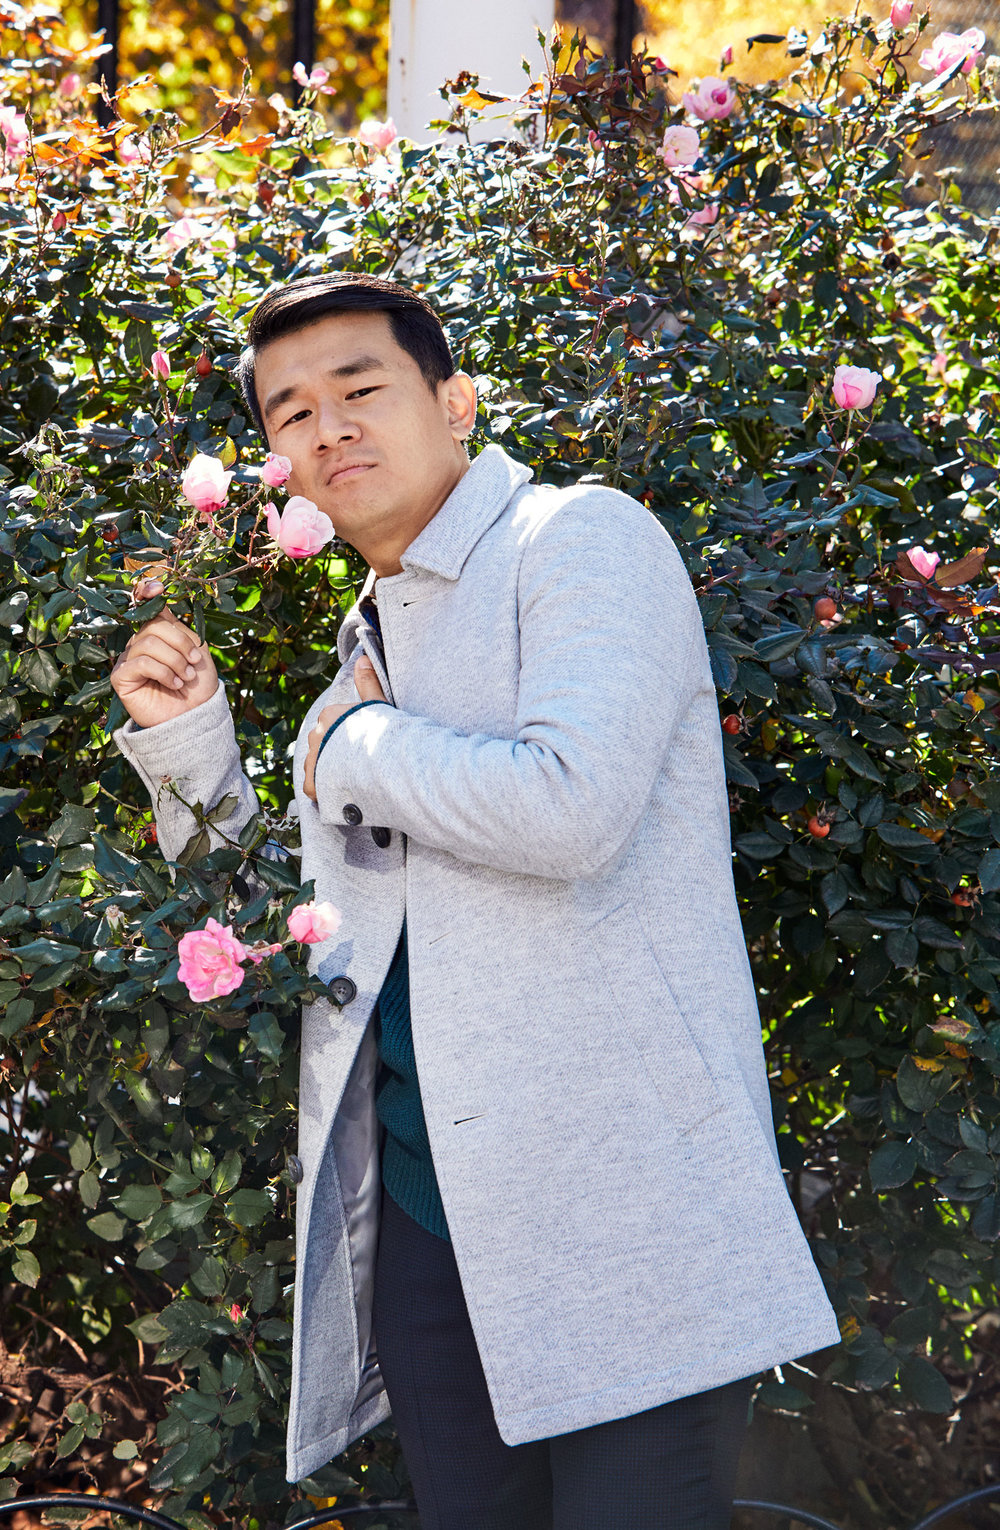 Ronny, a rose among roses, wears the    Italian Wool Car Coat (Textured Light Grey)   , the    Stretch Wool Dress Pants (Navy Stripe)   , and the    Cotton Cashmere Raglan Sweater (Ocean Teal)